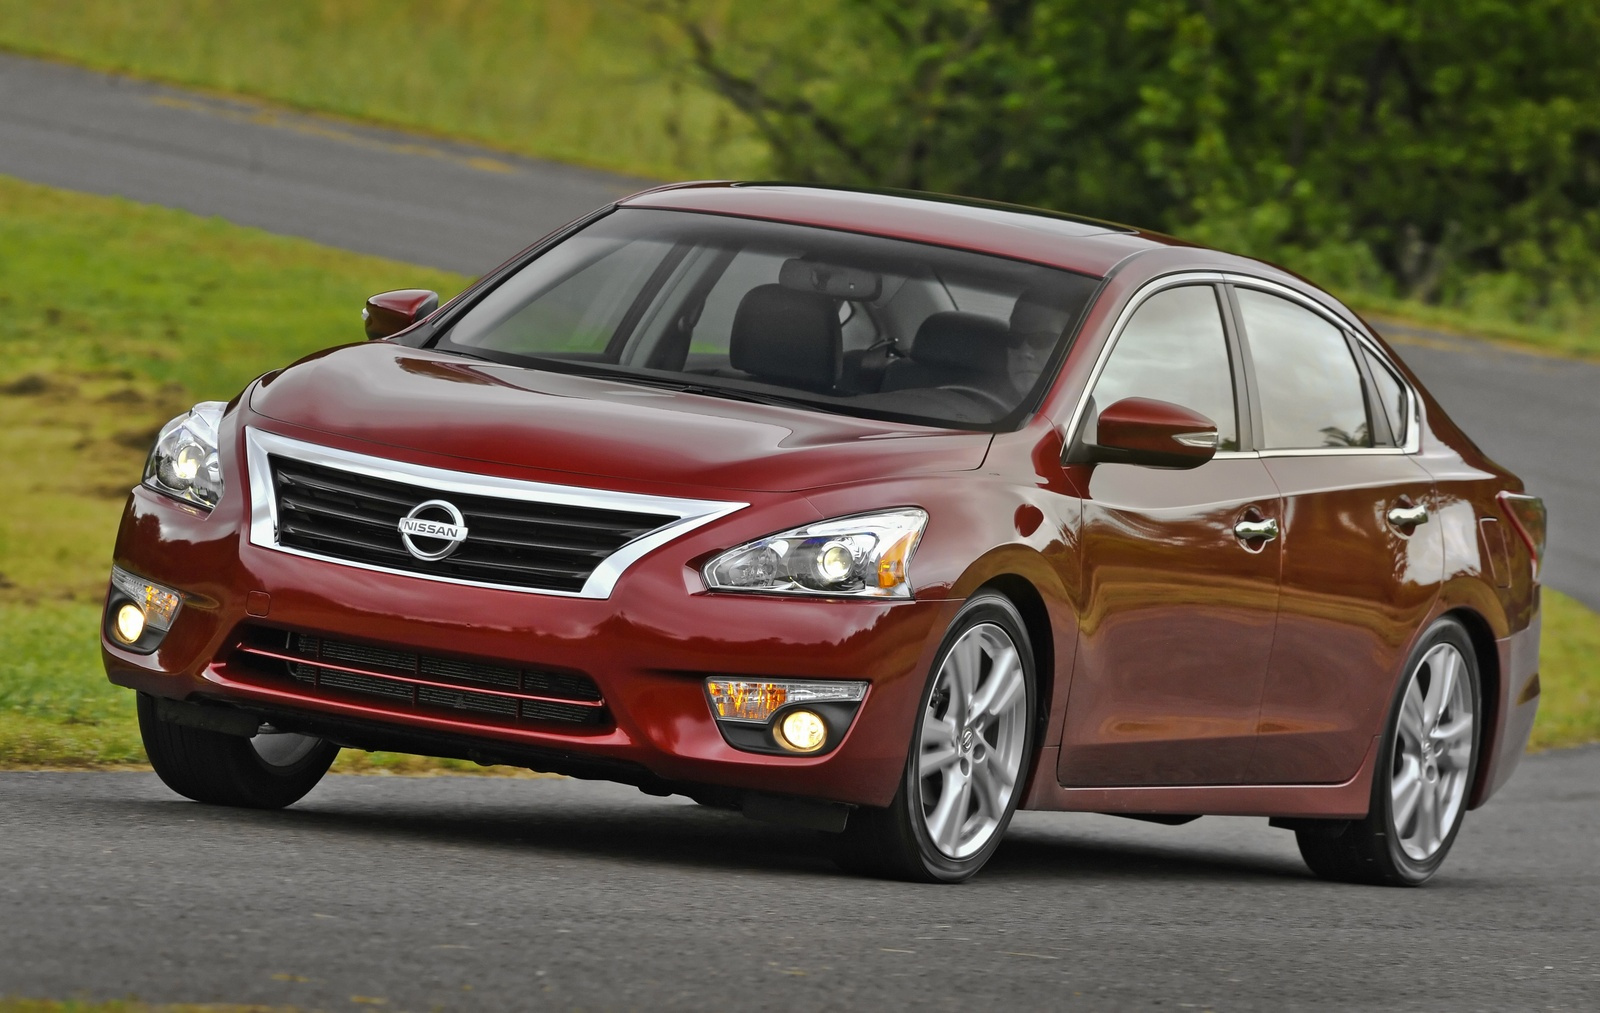 l altima review com attachment nissan car interior reviews st forcegt dashboard